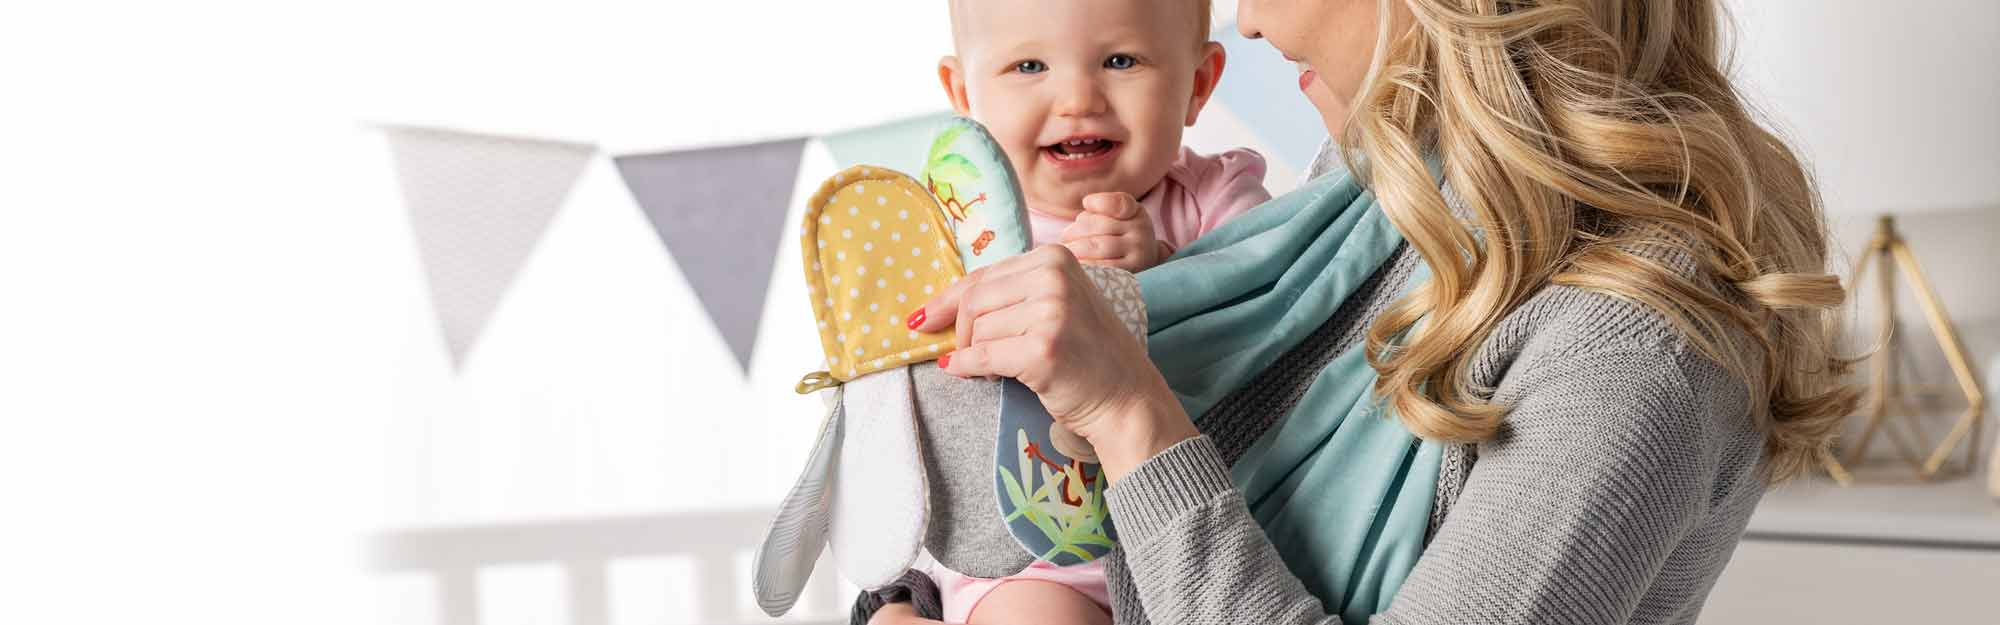 Mommy wearing a bright-colored scarf with texture activities for baby